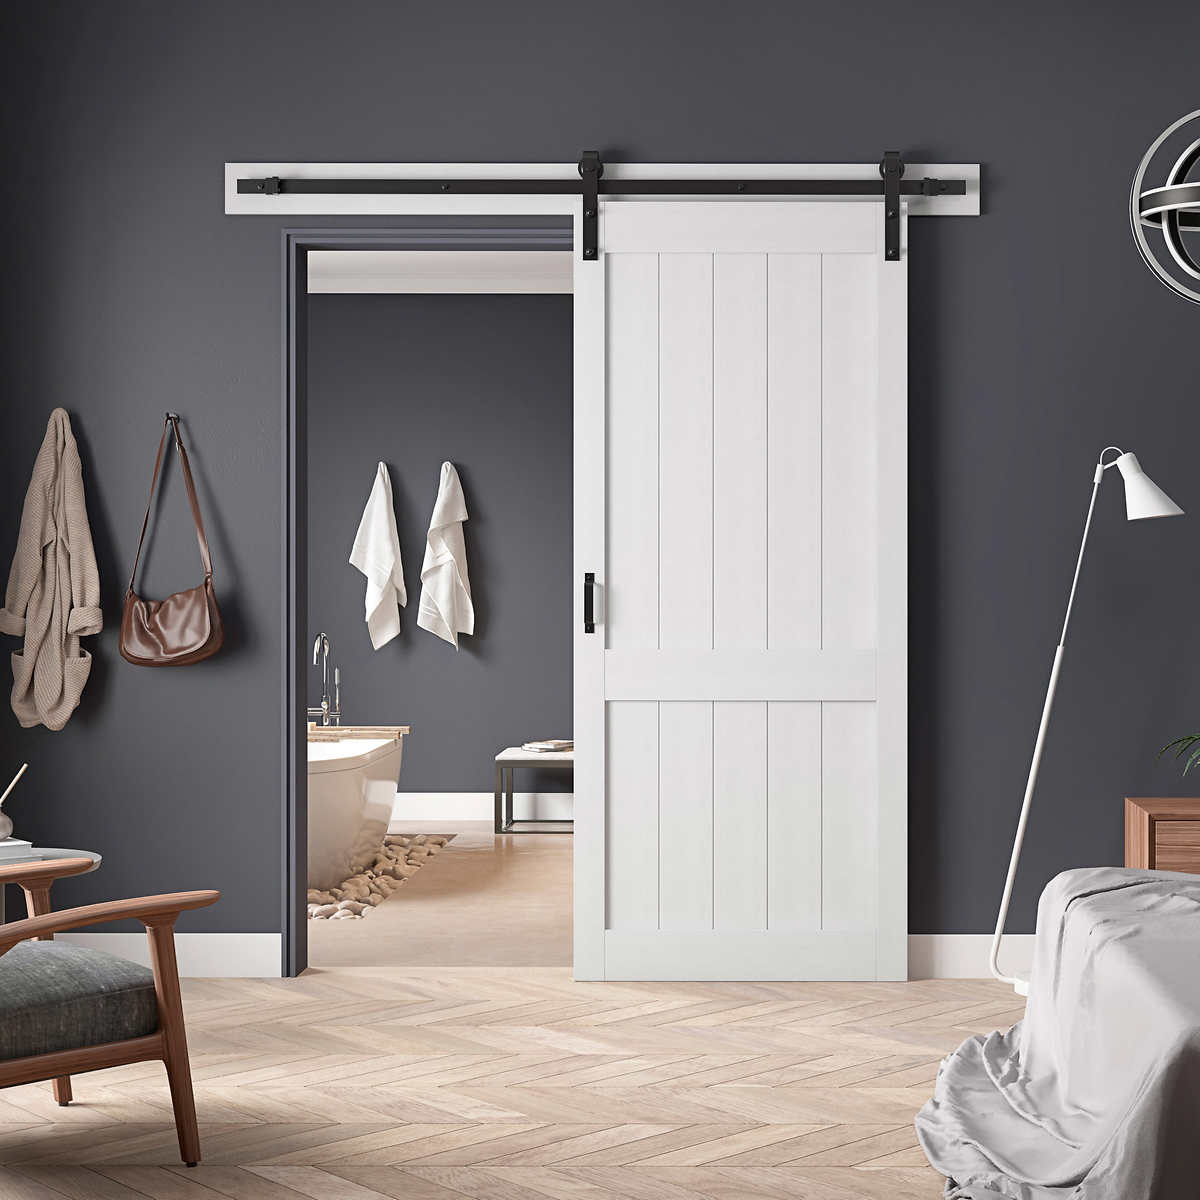 Ove Decors Barn Door With Hardware Kit Smooth Soft Close